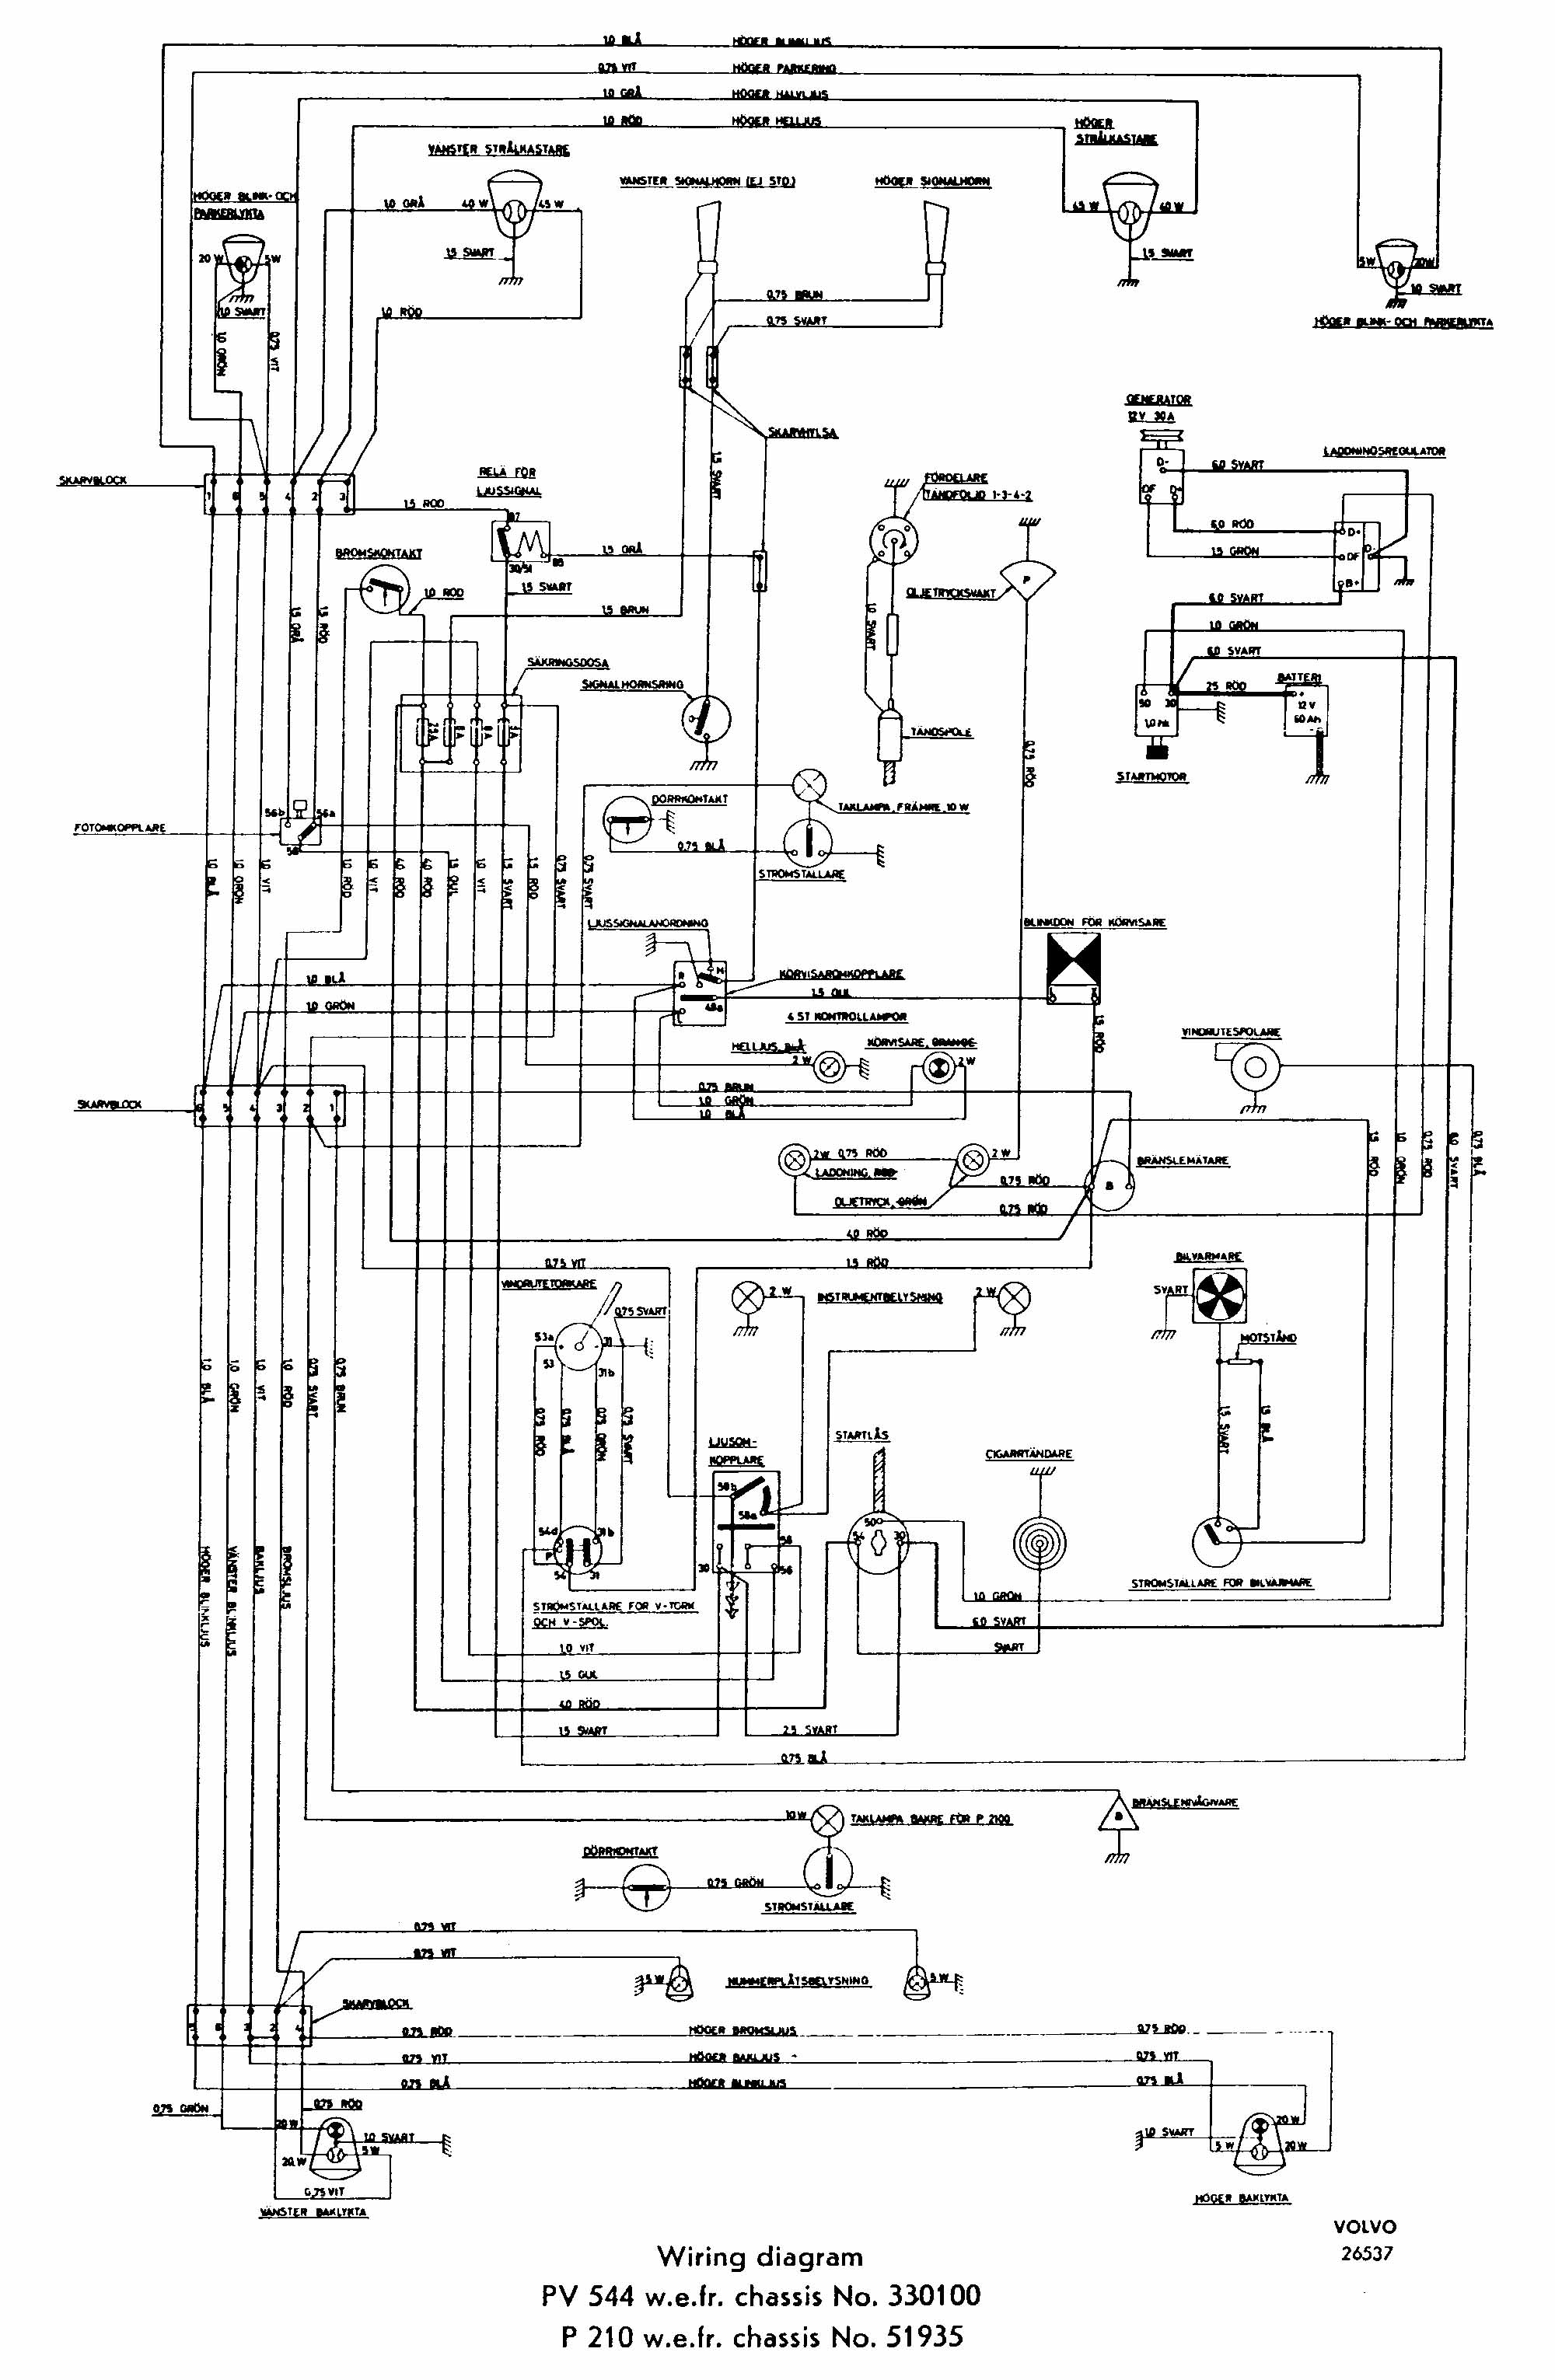 automotive schematics fuse box wiring diagram 1964 ford falcon